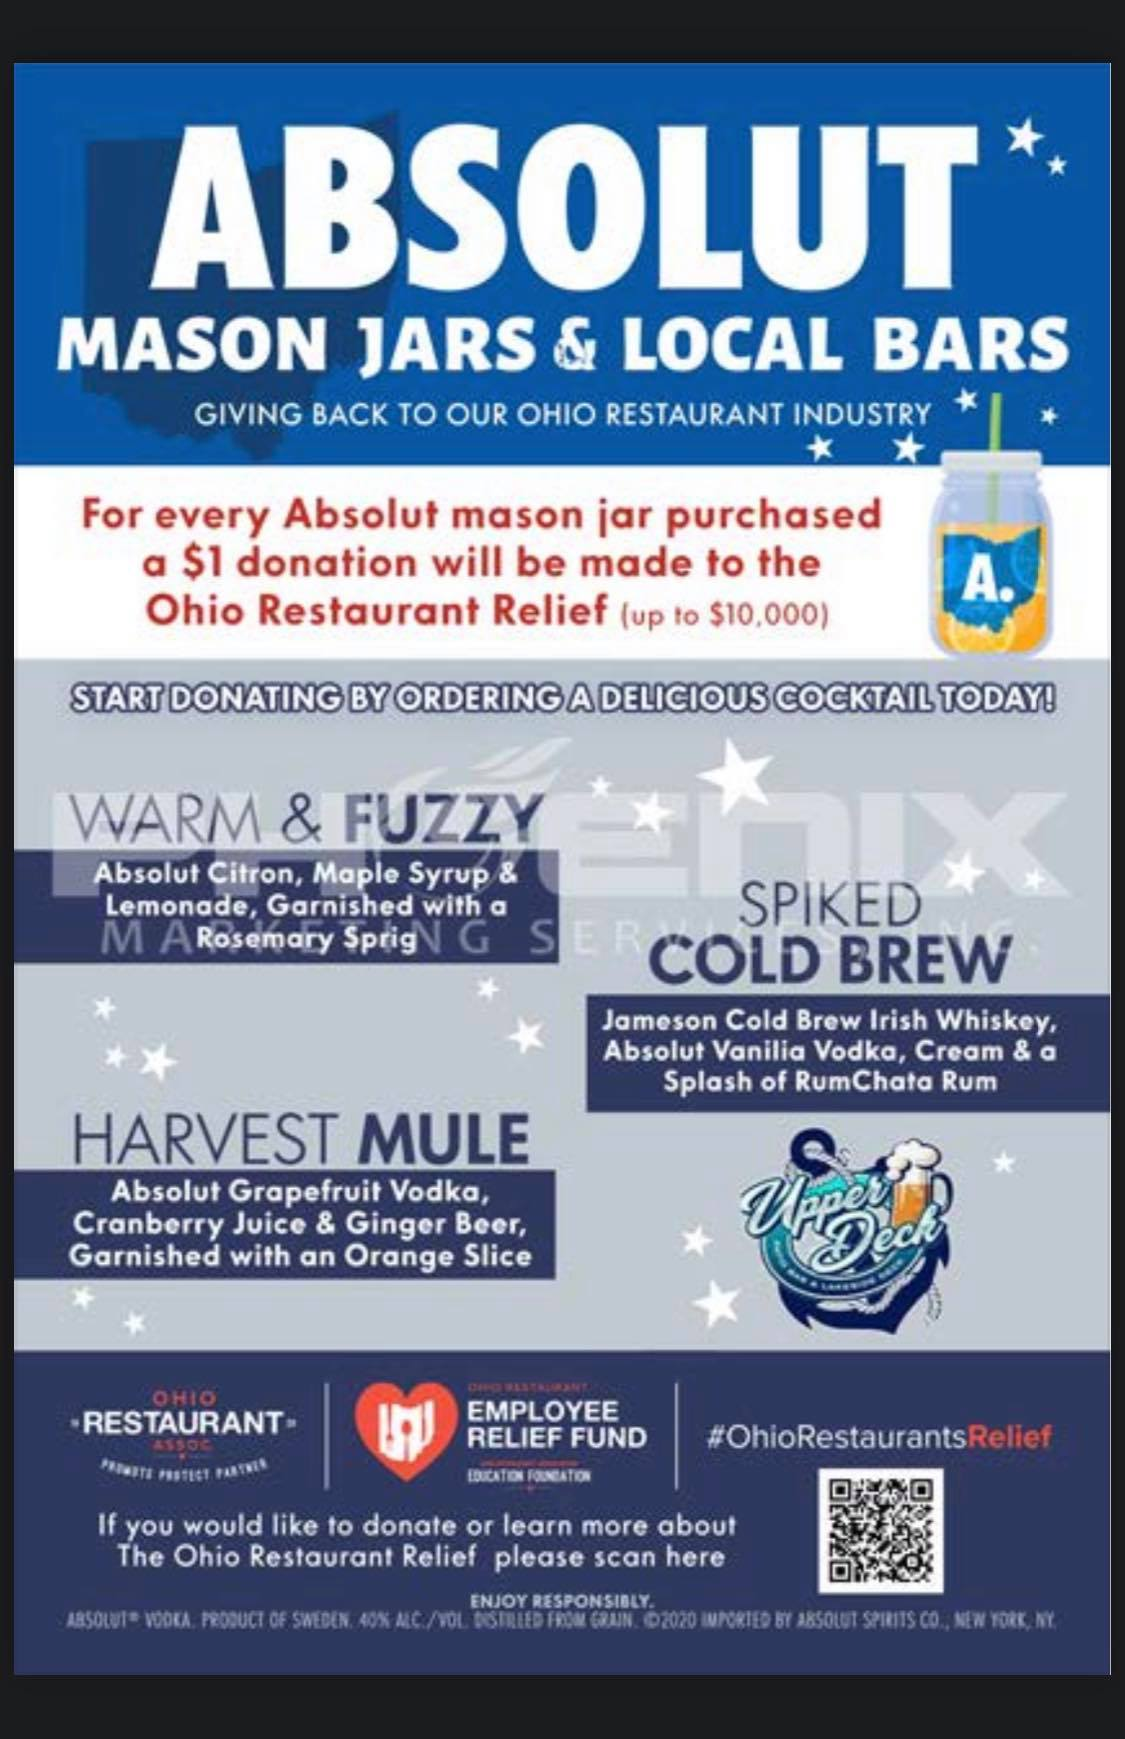 Mason Jars & Local Bars Fundraiser